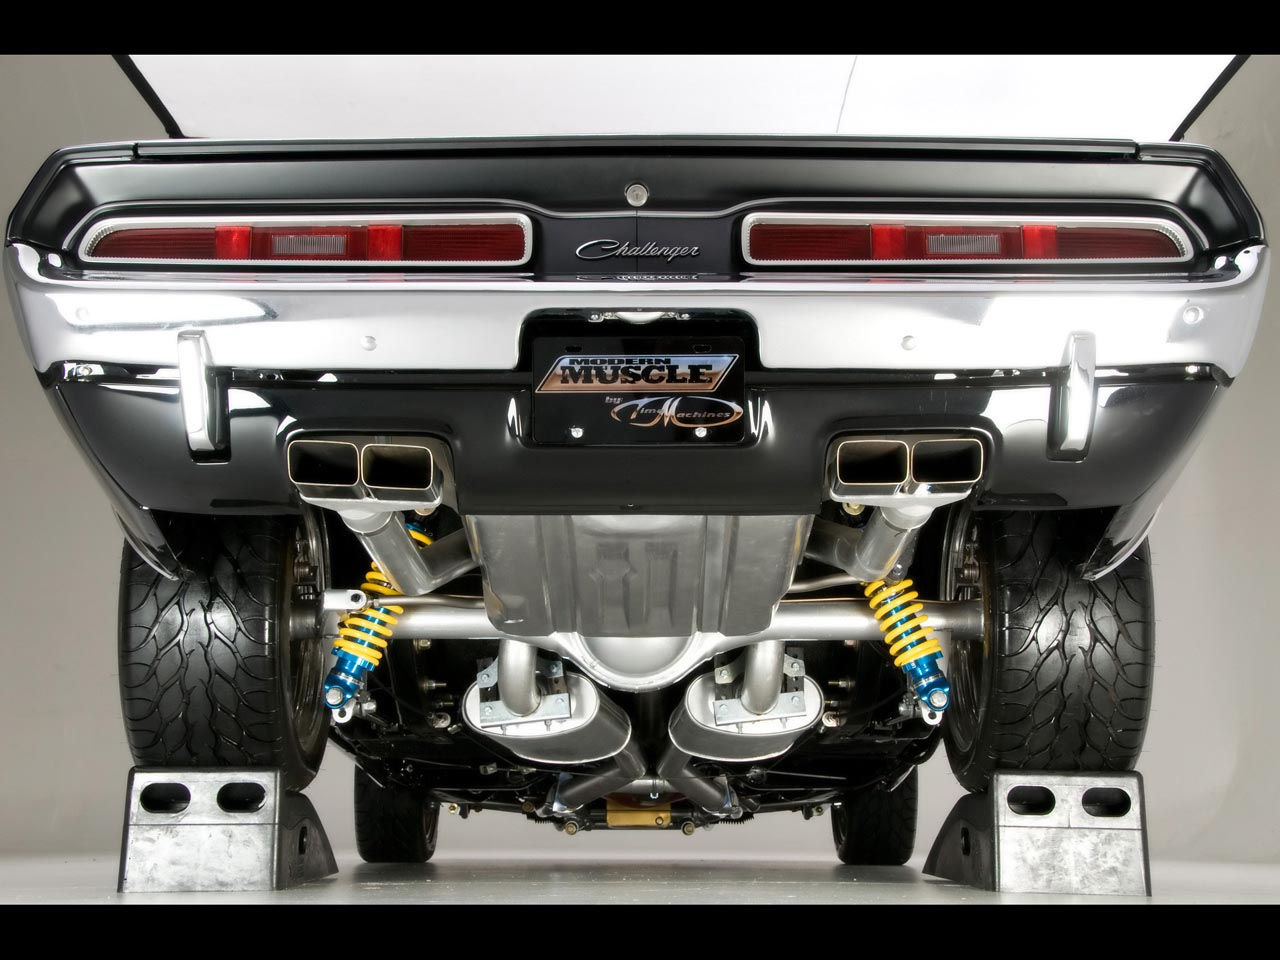 http://1.bp.blogspot.com/-8bfYbxrWy2I/T4xl3i-nYSI/AAAAAAAABXU/vL1pL7NG0Sw/s1600/Challenger_Modern_Muscle_Under_View_Back_Side_HD_Car_Wallpaper.jpg